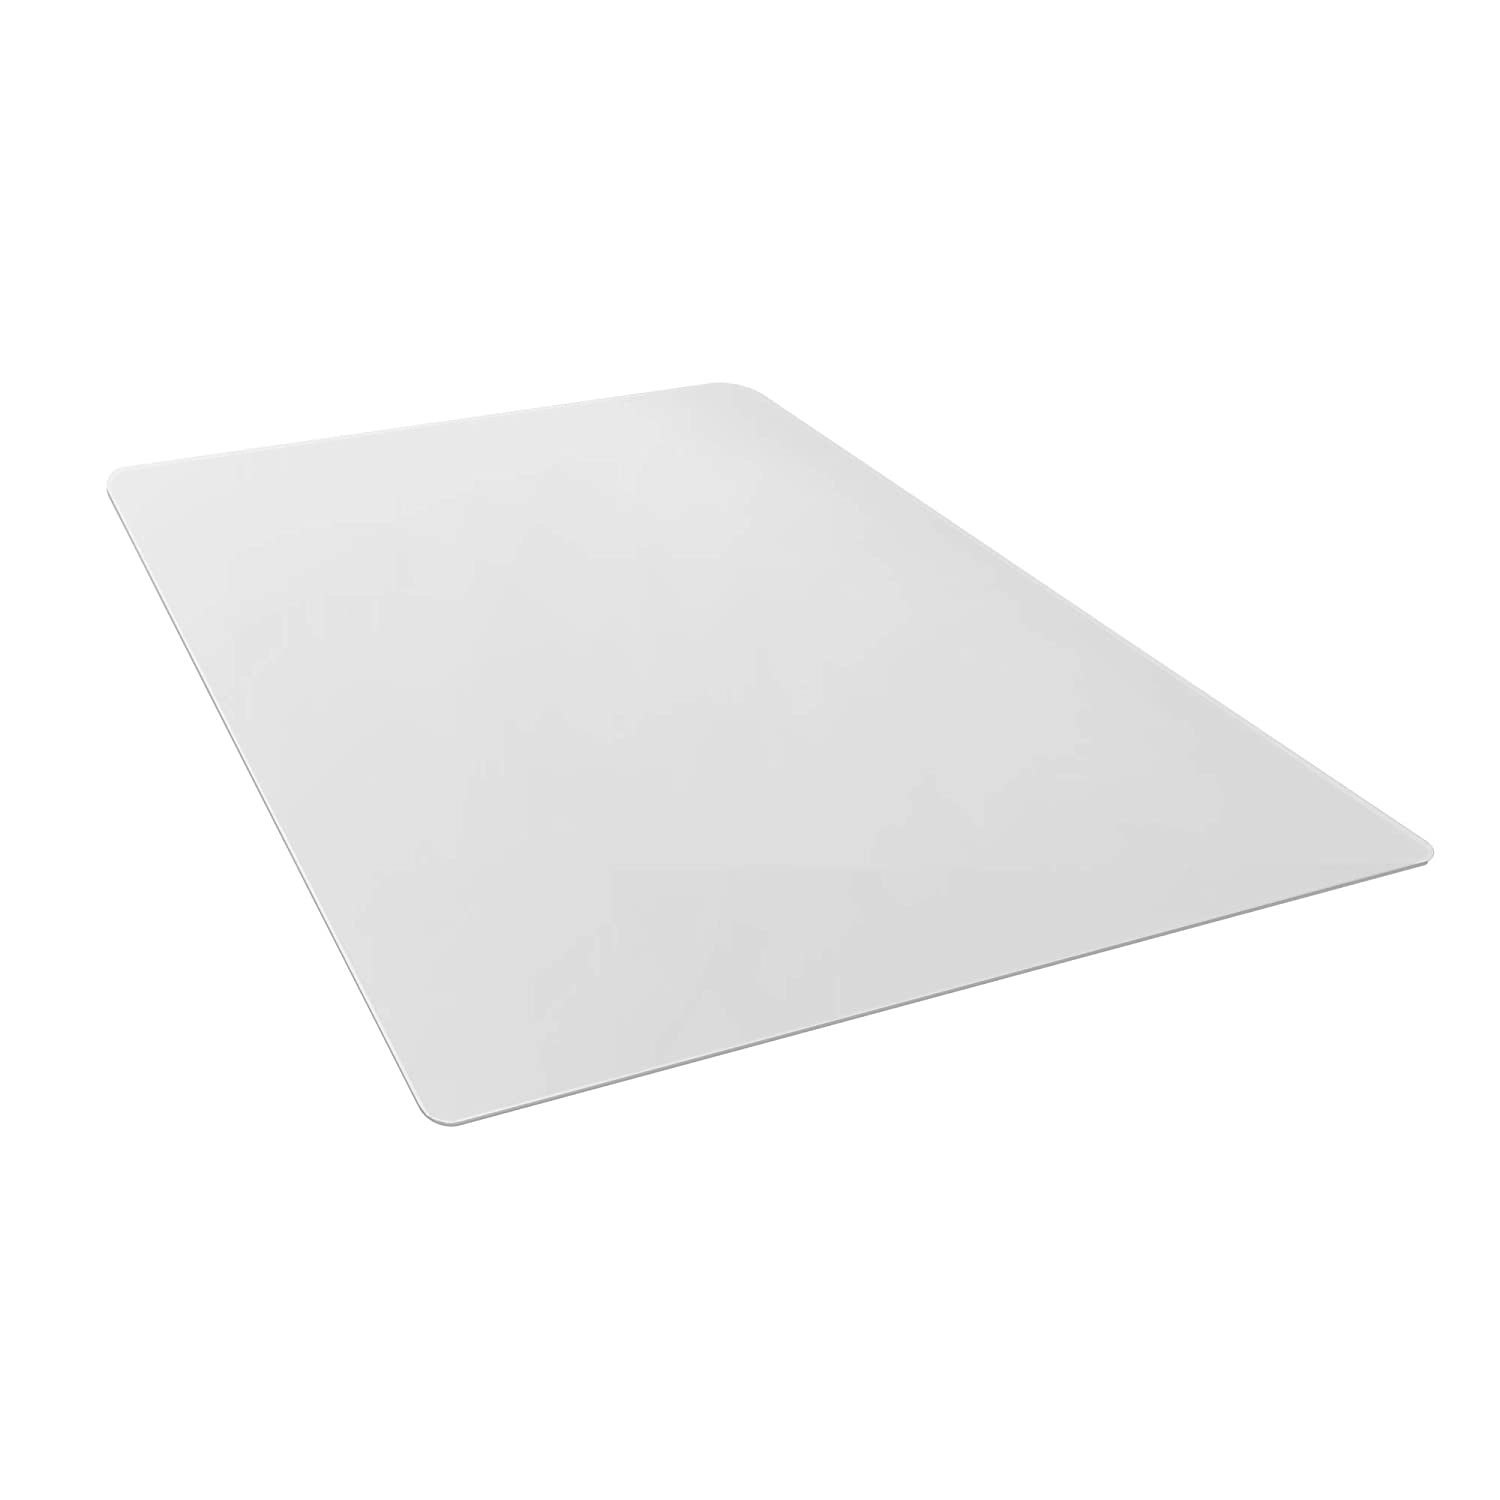 "AmazonBasics Polycarbonate Chair Mat for Hard Floors - 47"" x 79"""